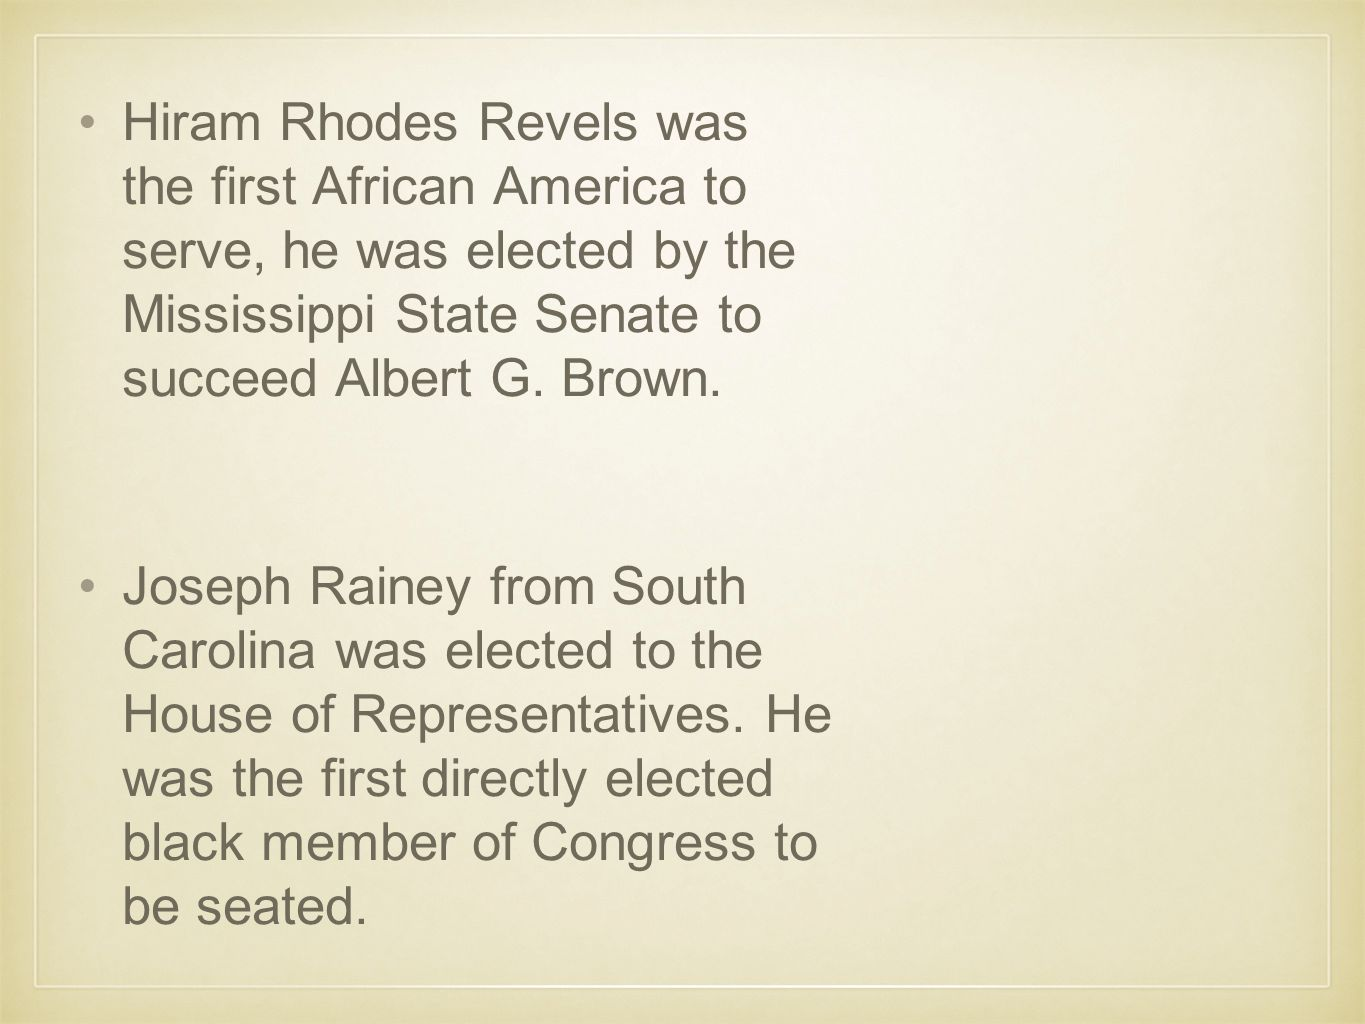 Hiram Rhodes Revels was the first African America to serve, he was elected by the Mississippi State Senate to succeed Albert G. Brown.